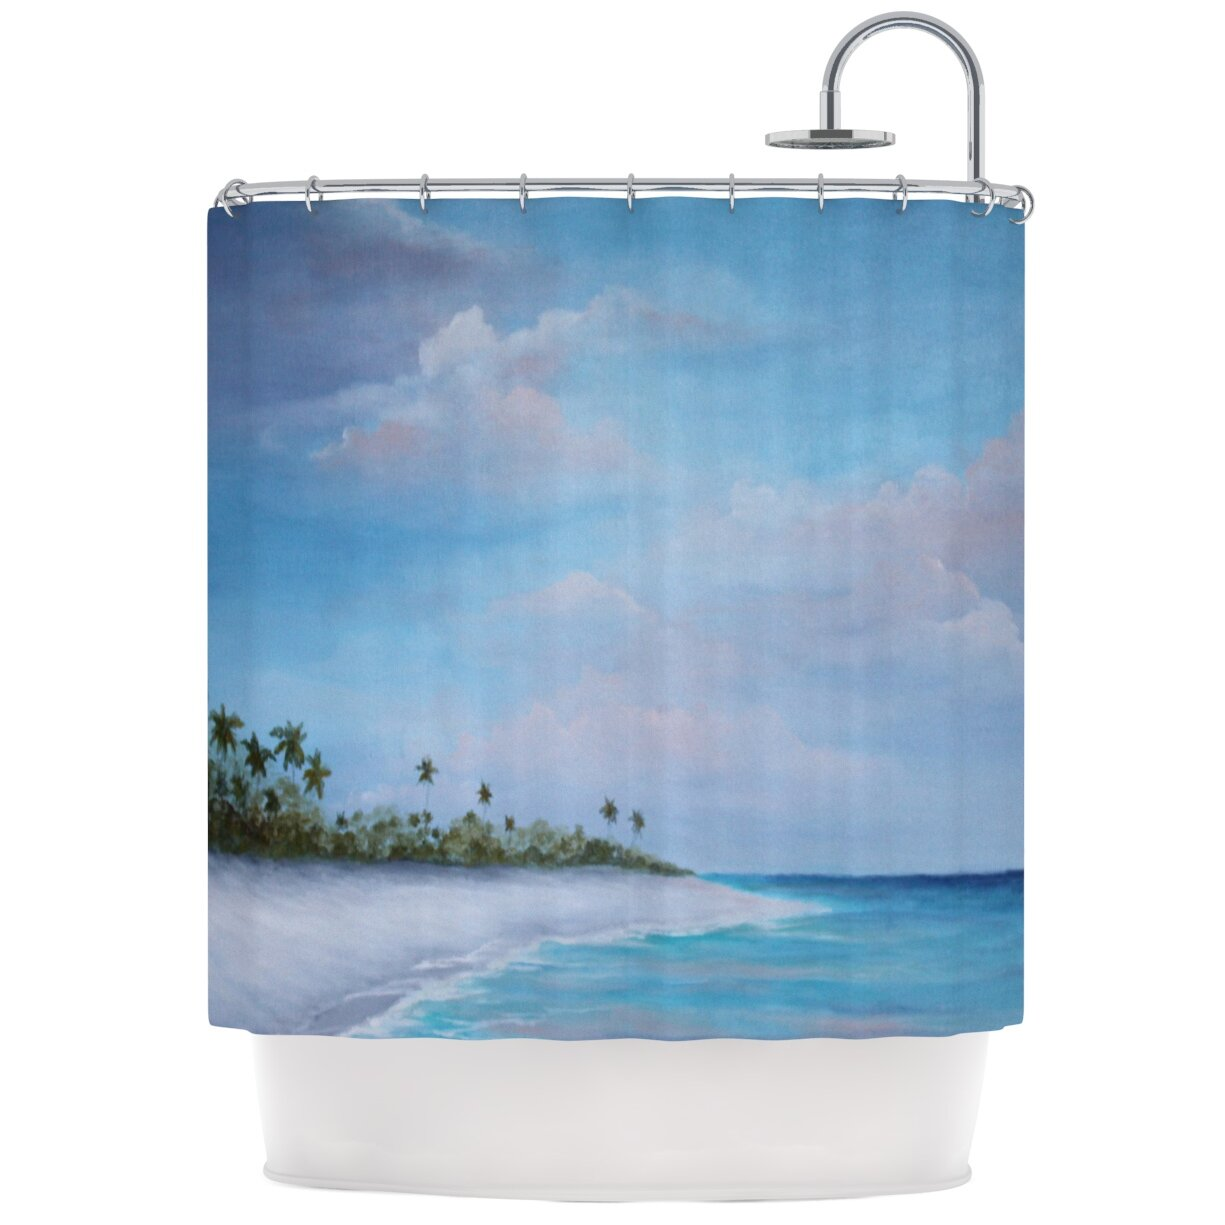 KESS InHouse Carefree Caribbean Shower Curtain